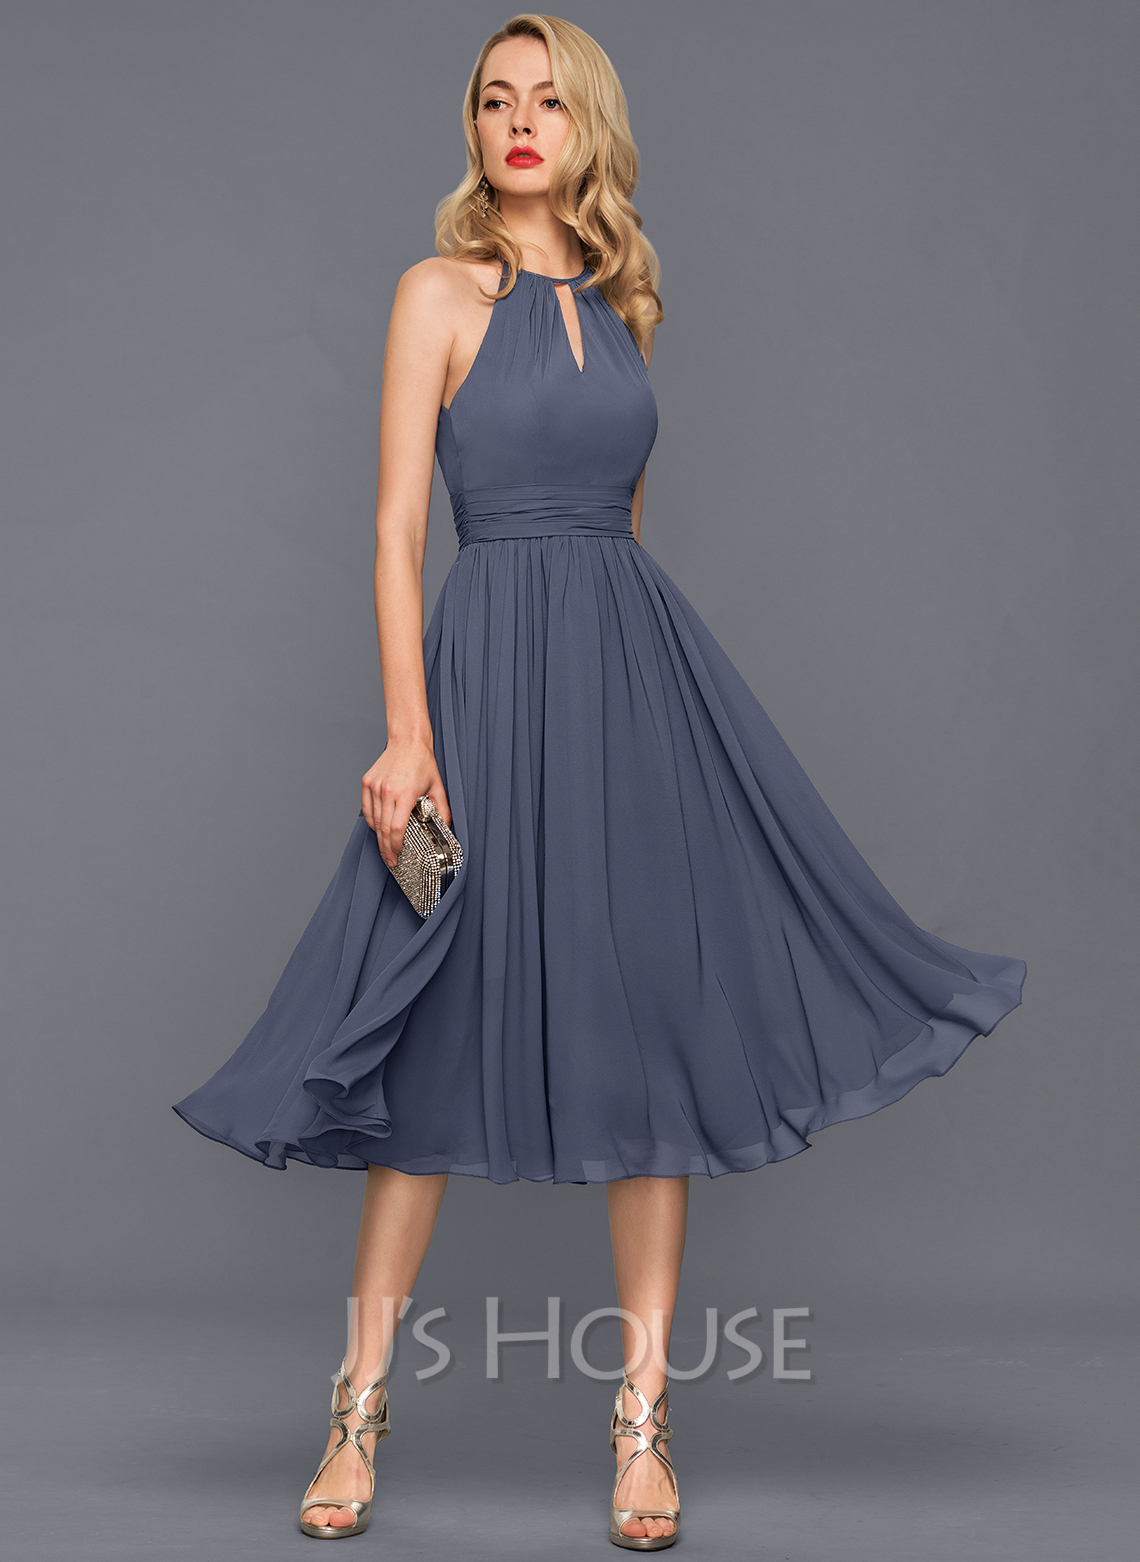 672e40c4b04e A-Line Scoop Neck Knee-Length Chiffon Cocktail Dress With Ruffle. Loading  zoom